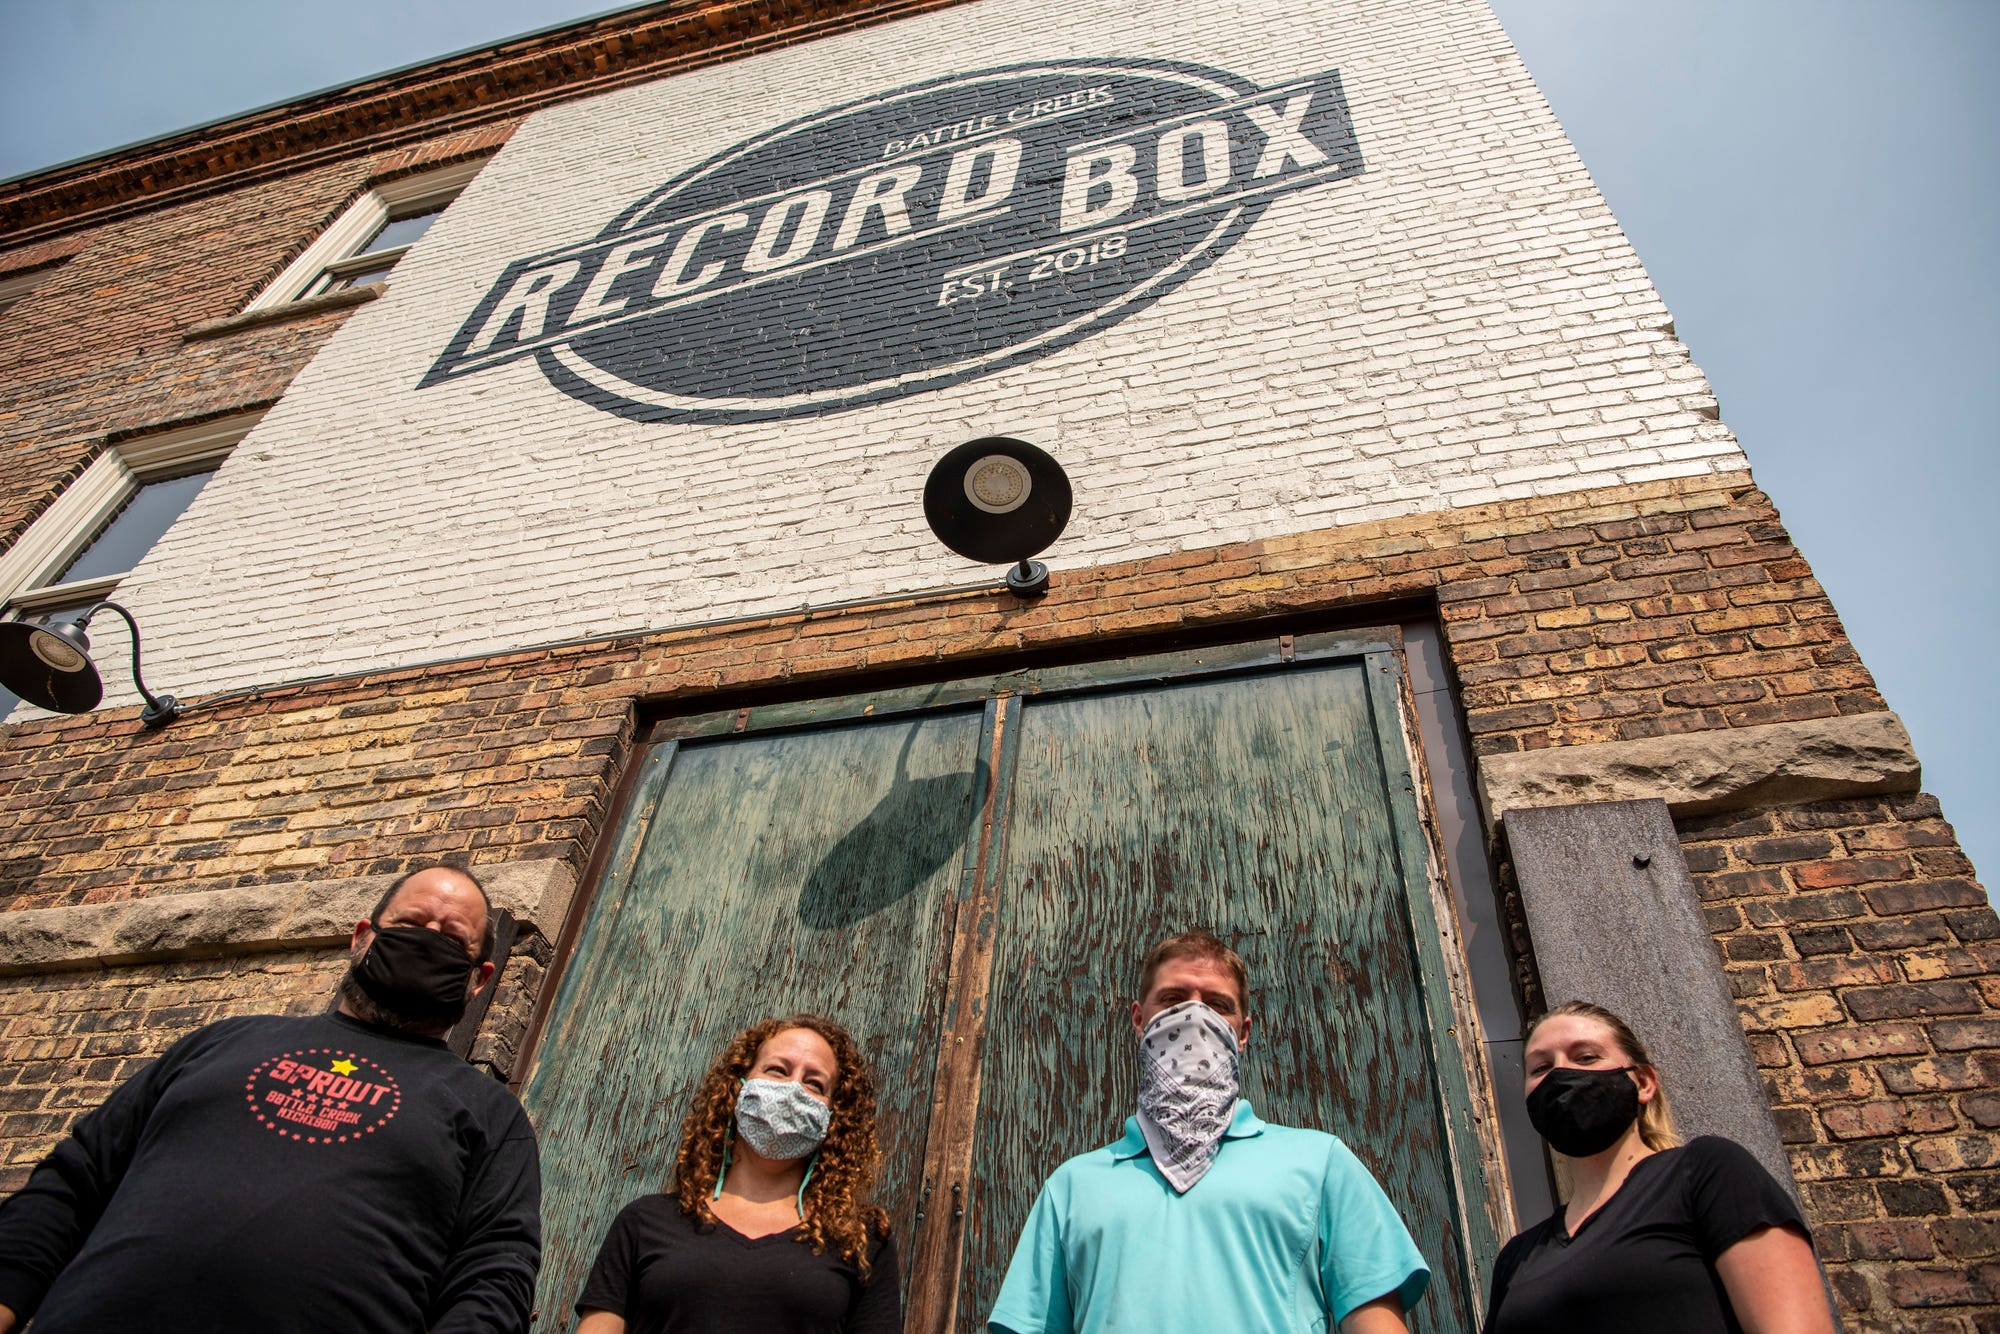 Jeremy Andrews, Lydia Marucco, Cody Newman and Caitlynn Newman stand for a portrait together on Tuesday, Sept. 15, 2020 outside The Record Box in Battle Creek, Mich. Sprout is partnering with Restore 269 to open a downtown market and deli in Battle Creek.